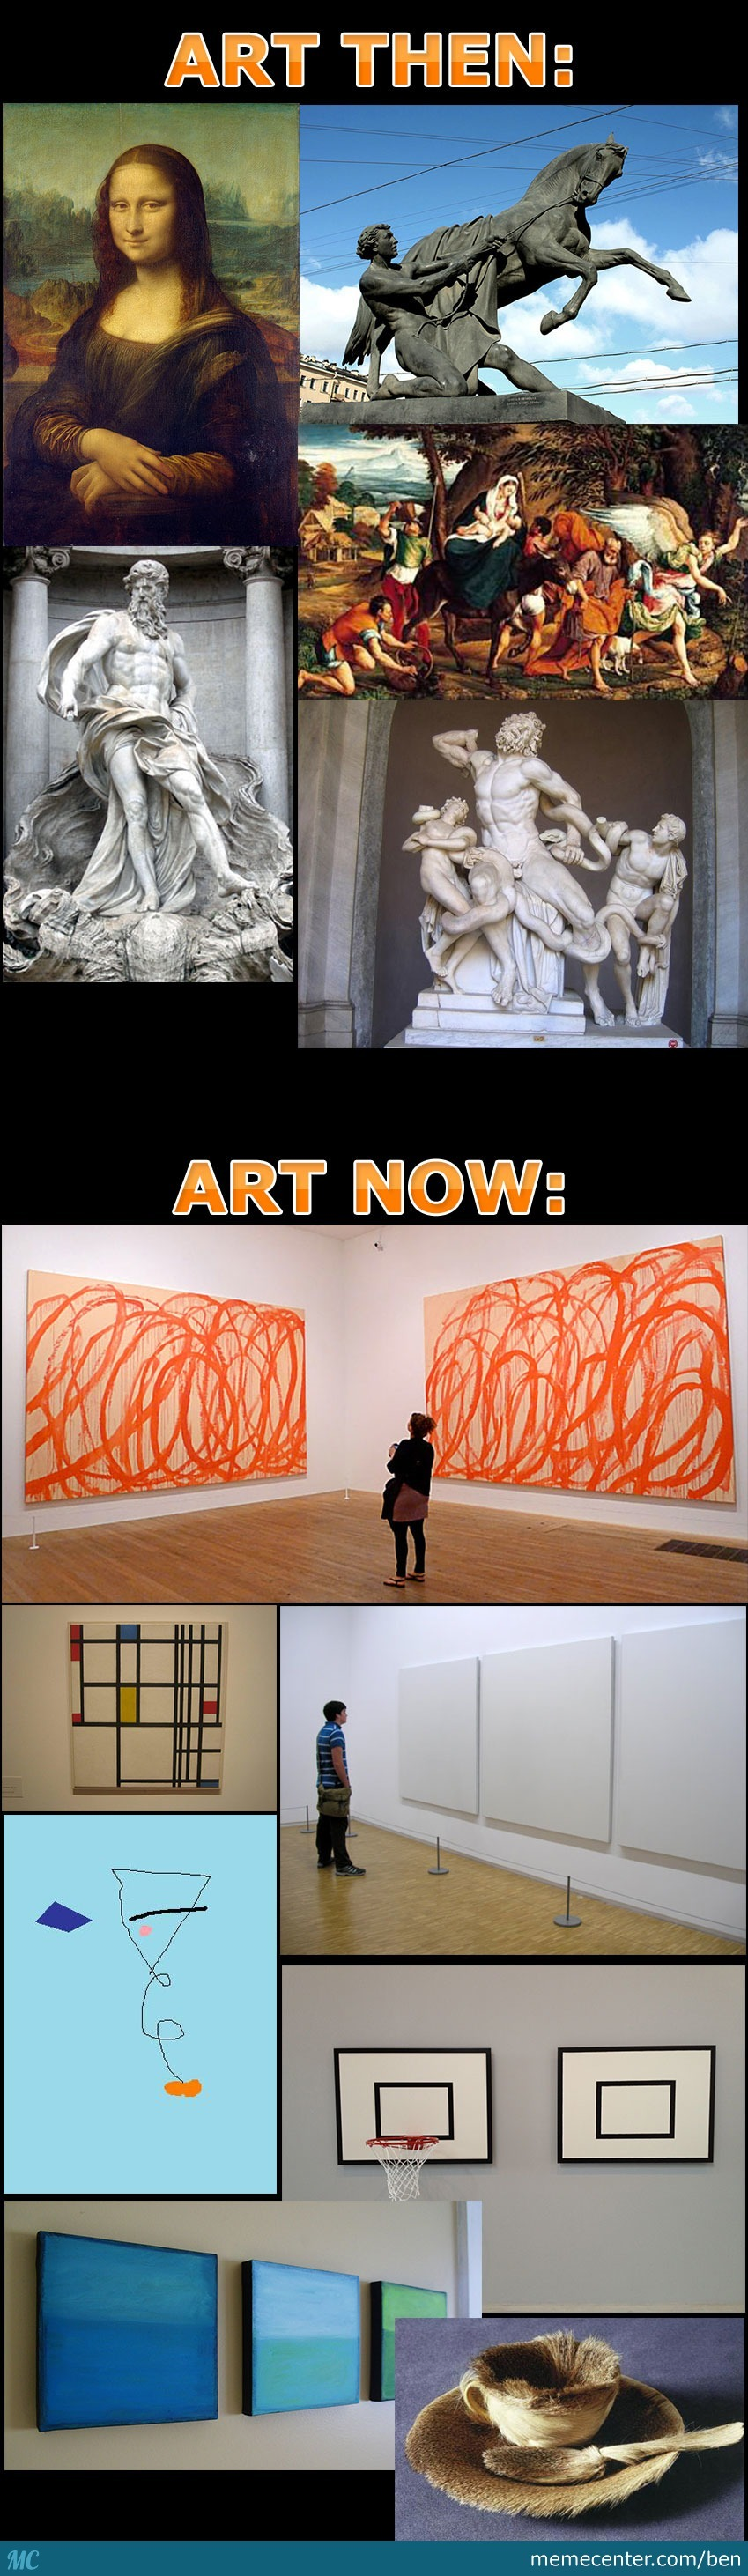 Art Then - Art Now